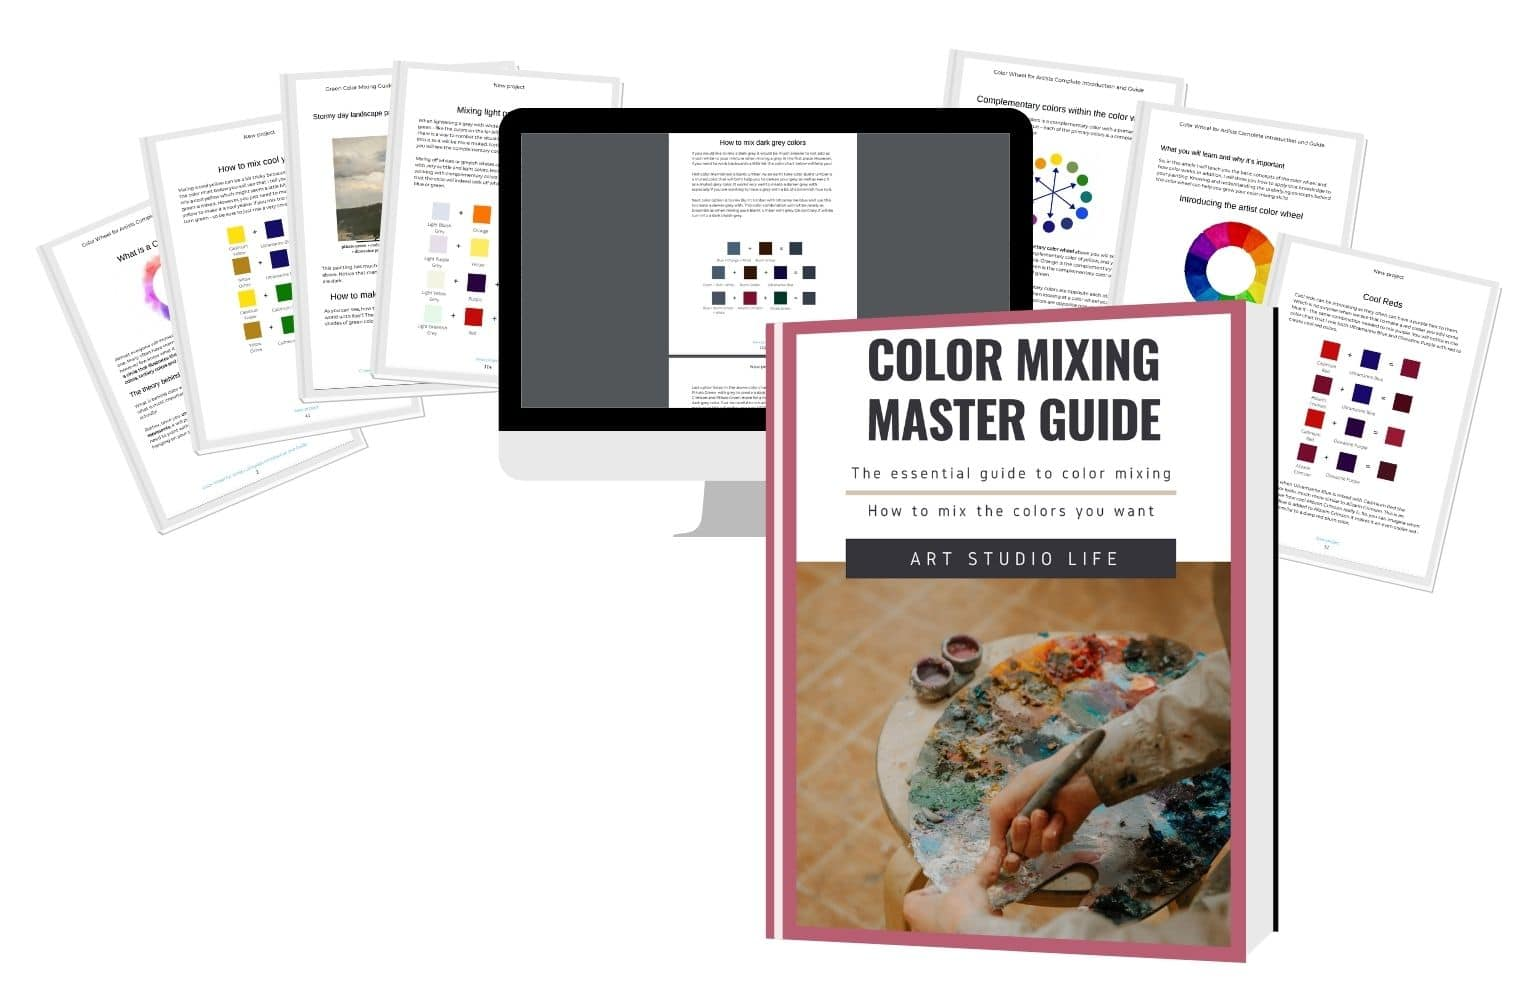 color mixing mater guide ebook contents preview